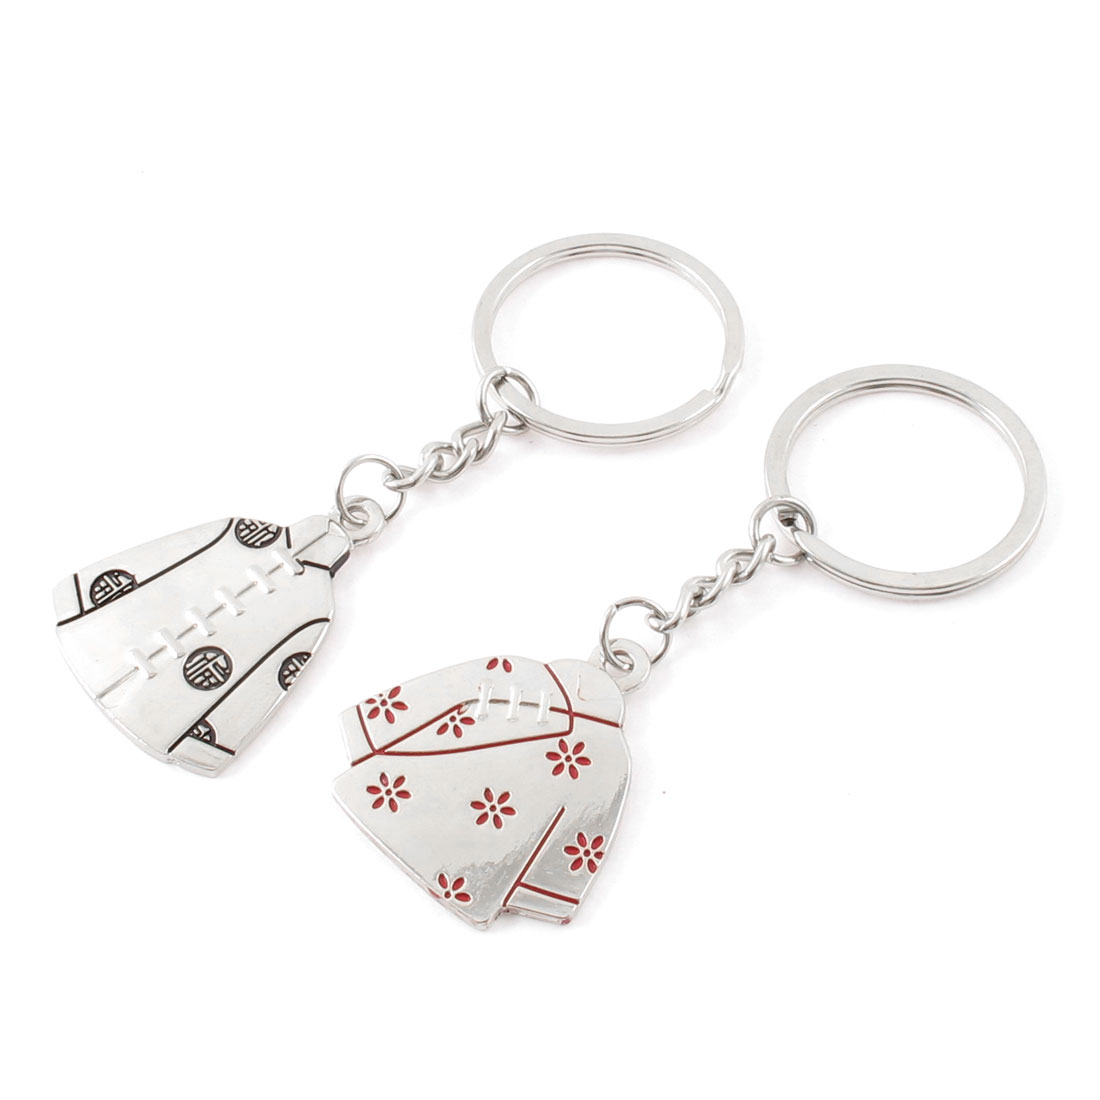 2 Pcs Tang Suit Design Pendant Couple Split Ring Keychain Keyring Silver Tone